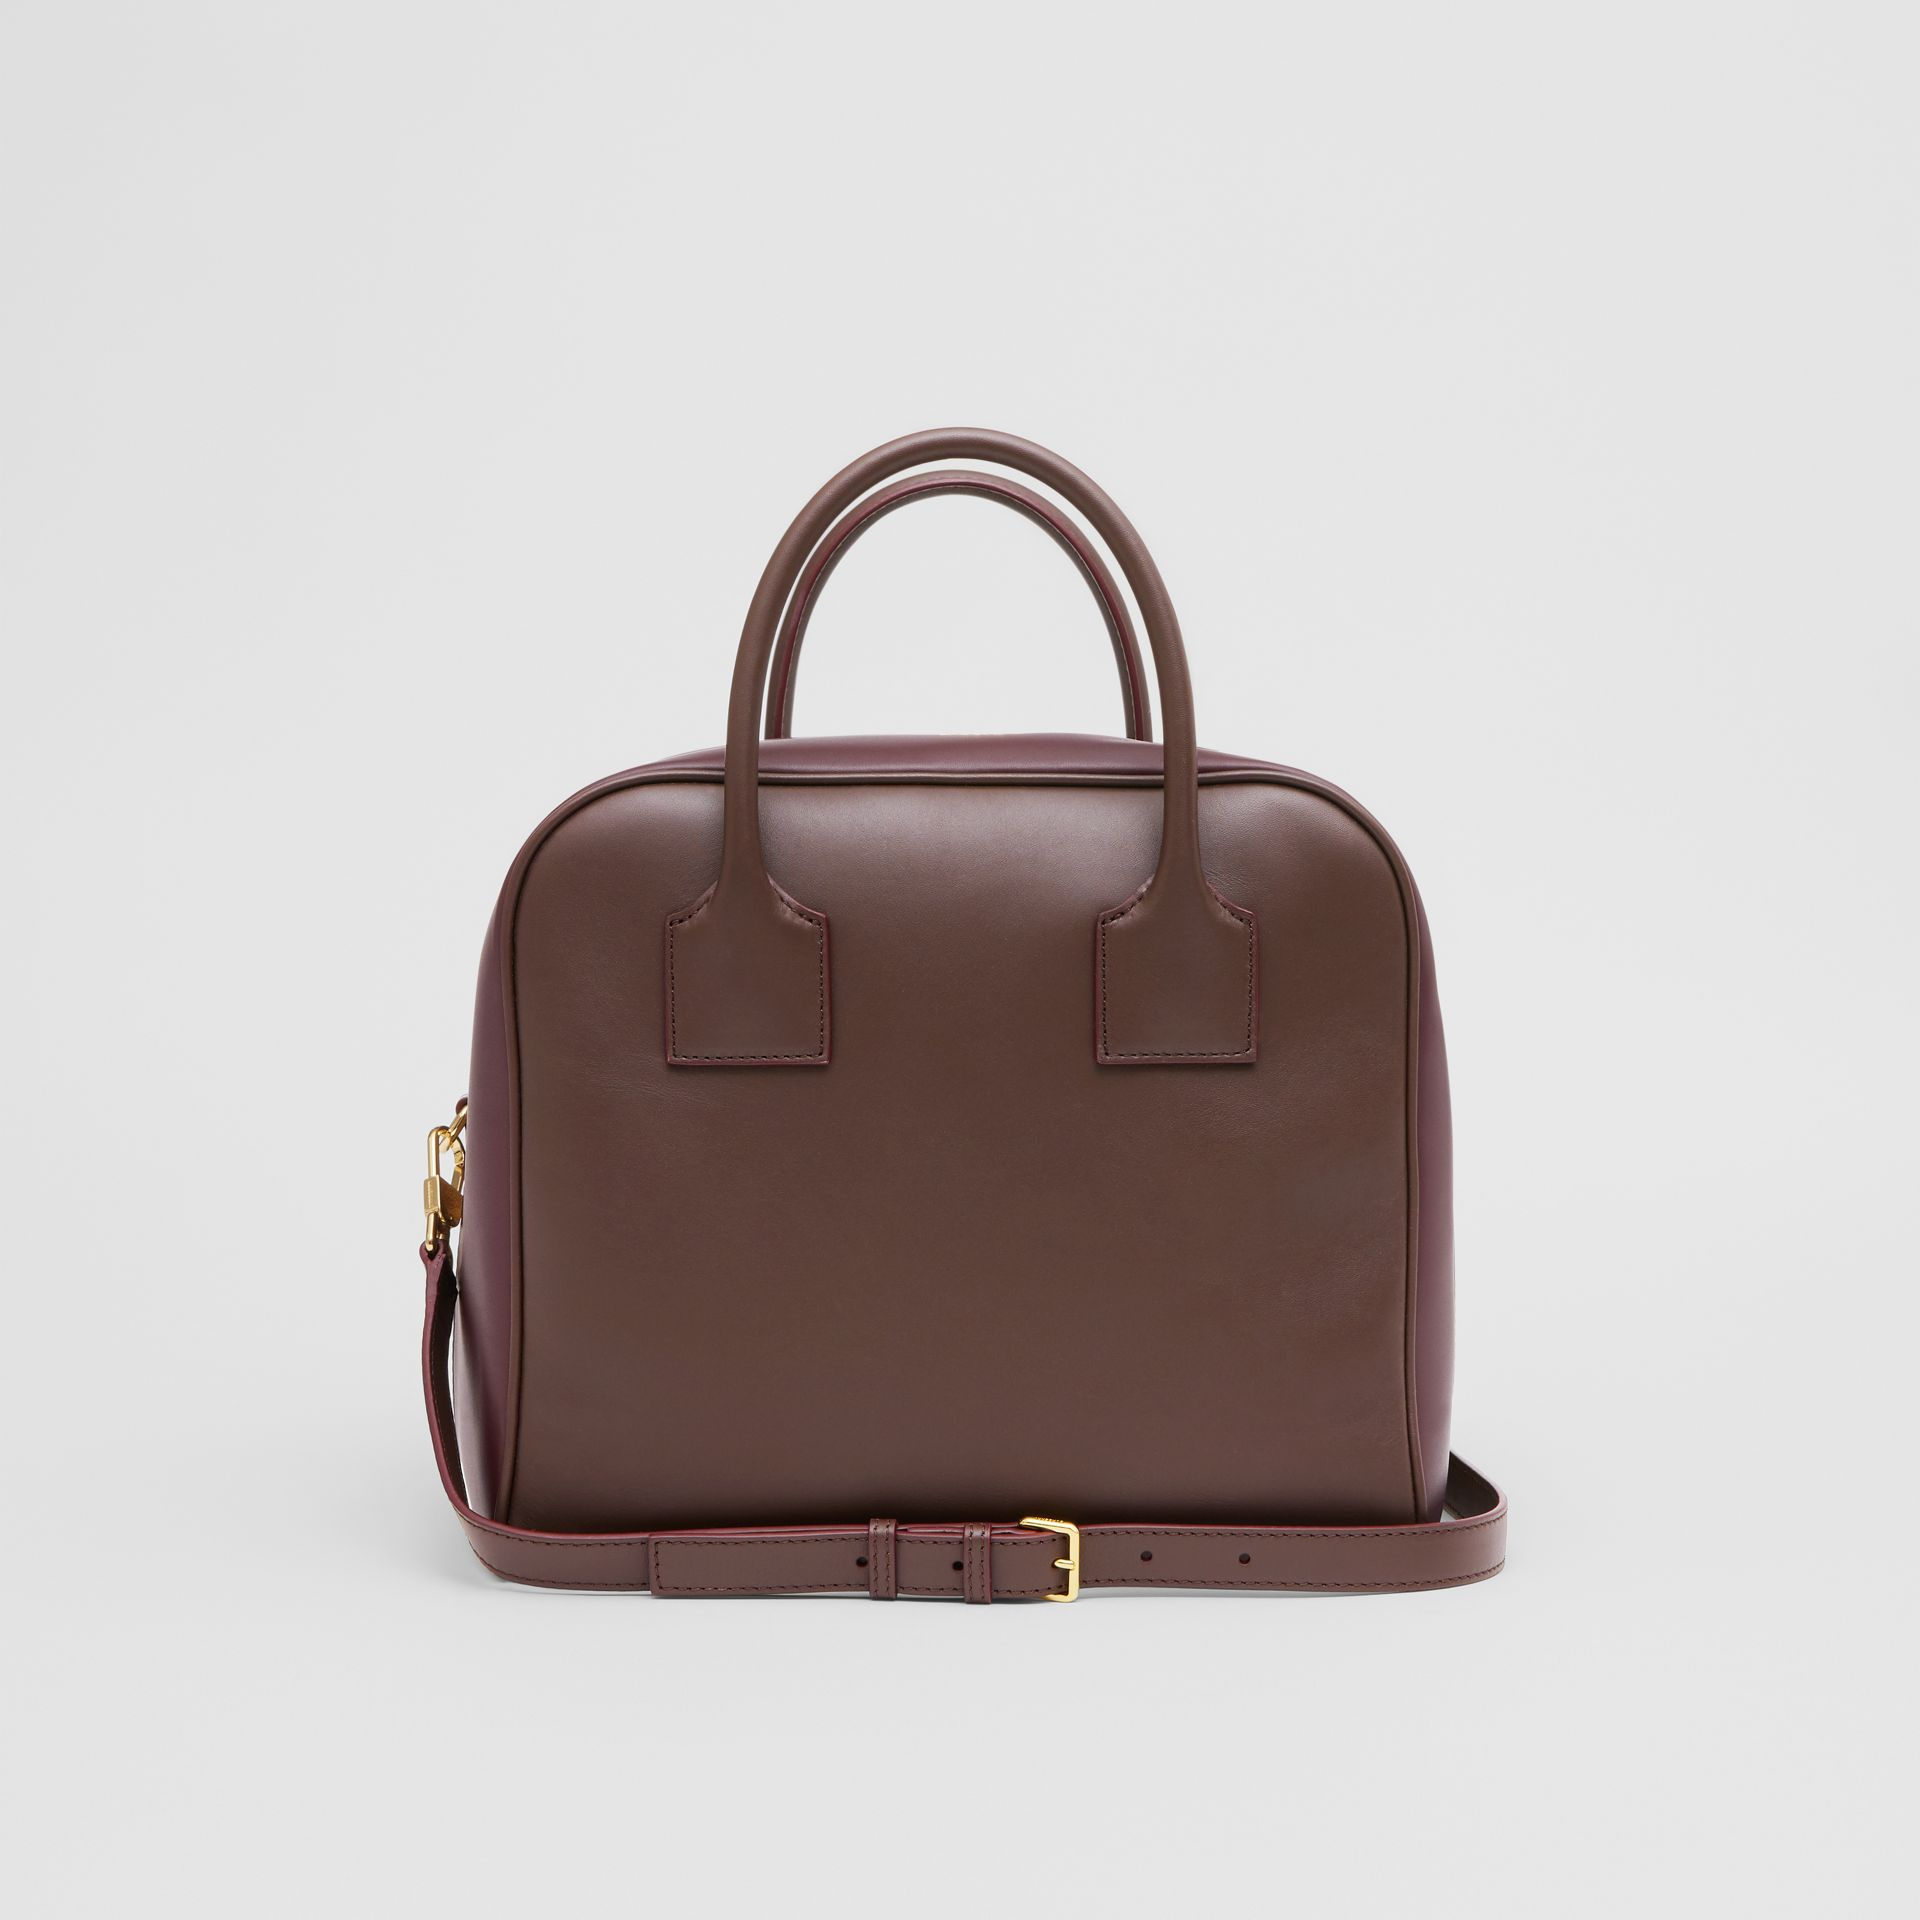 Medium Leather and Suede Cube Bag in Mahogany - Women | Burberry United States - gallery image 7